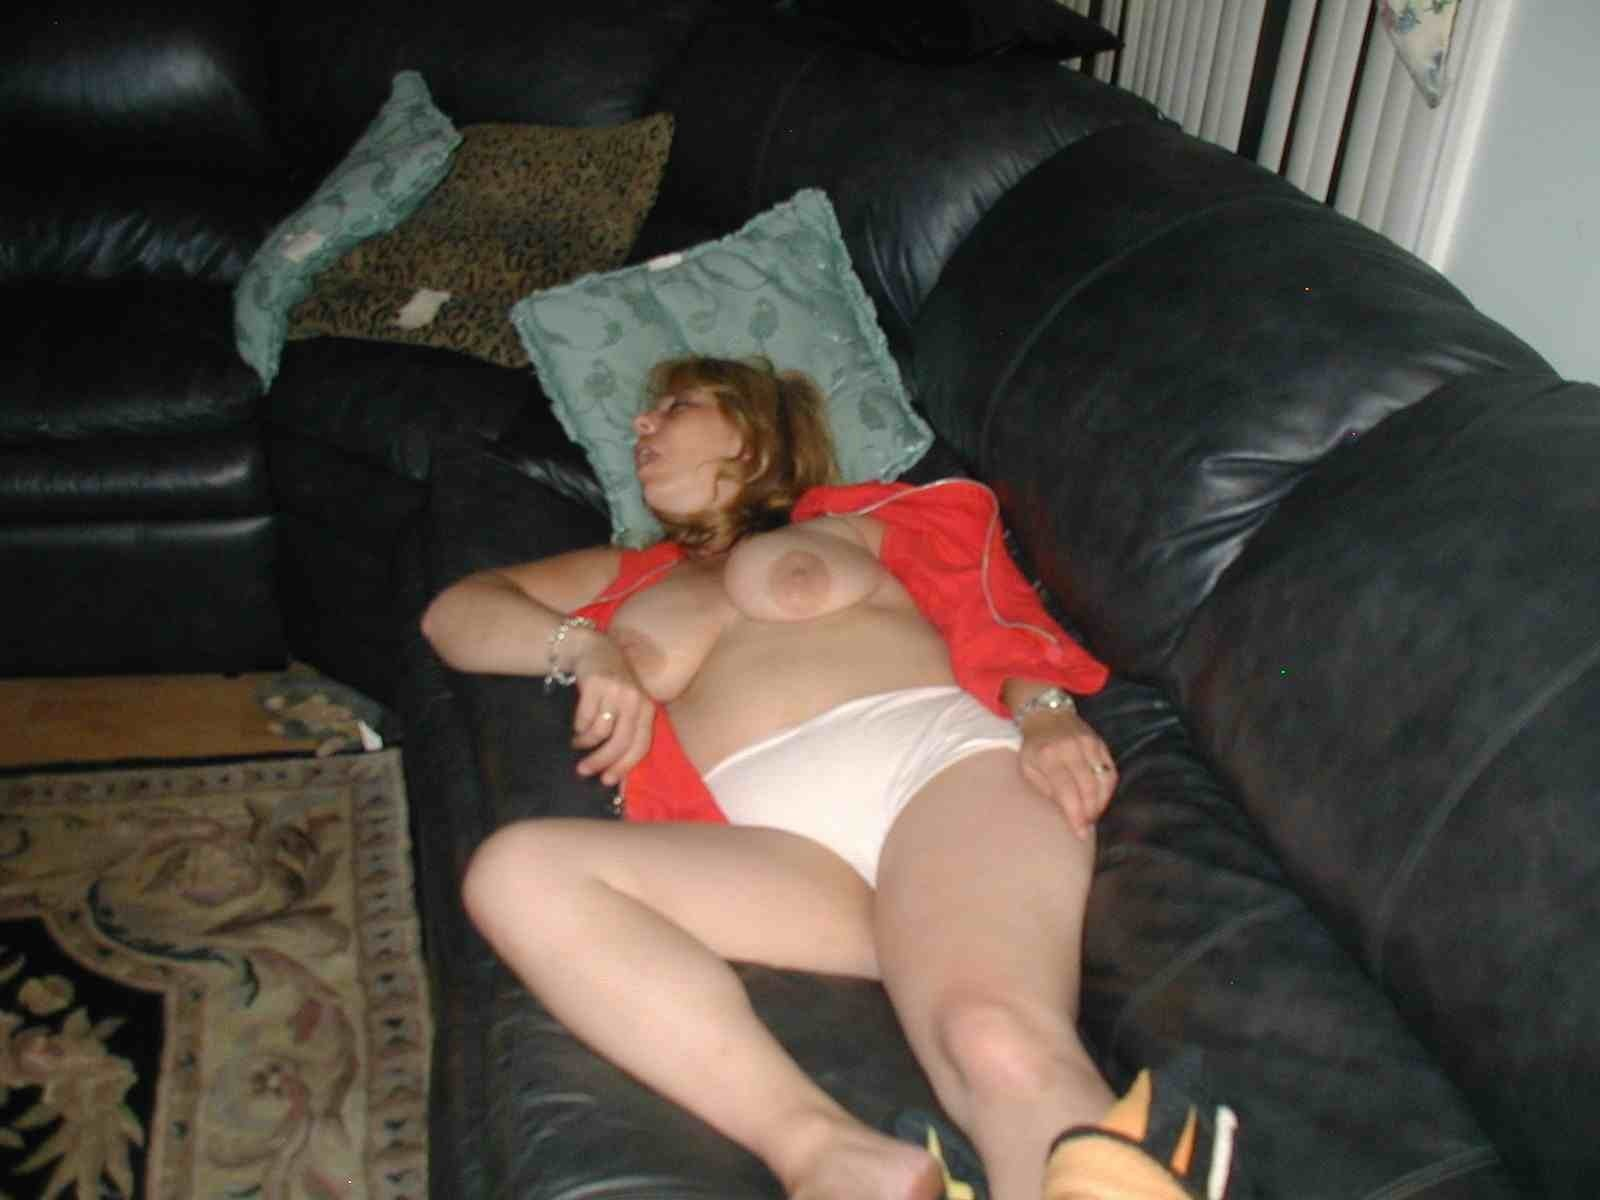 mom drunk passed out naked